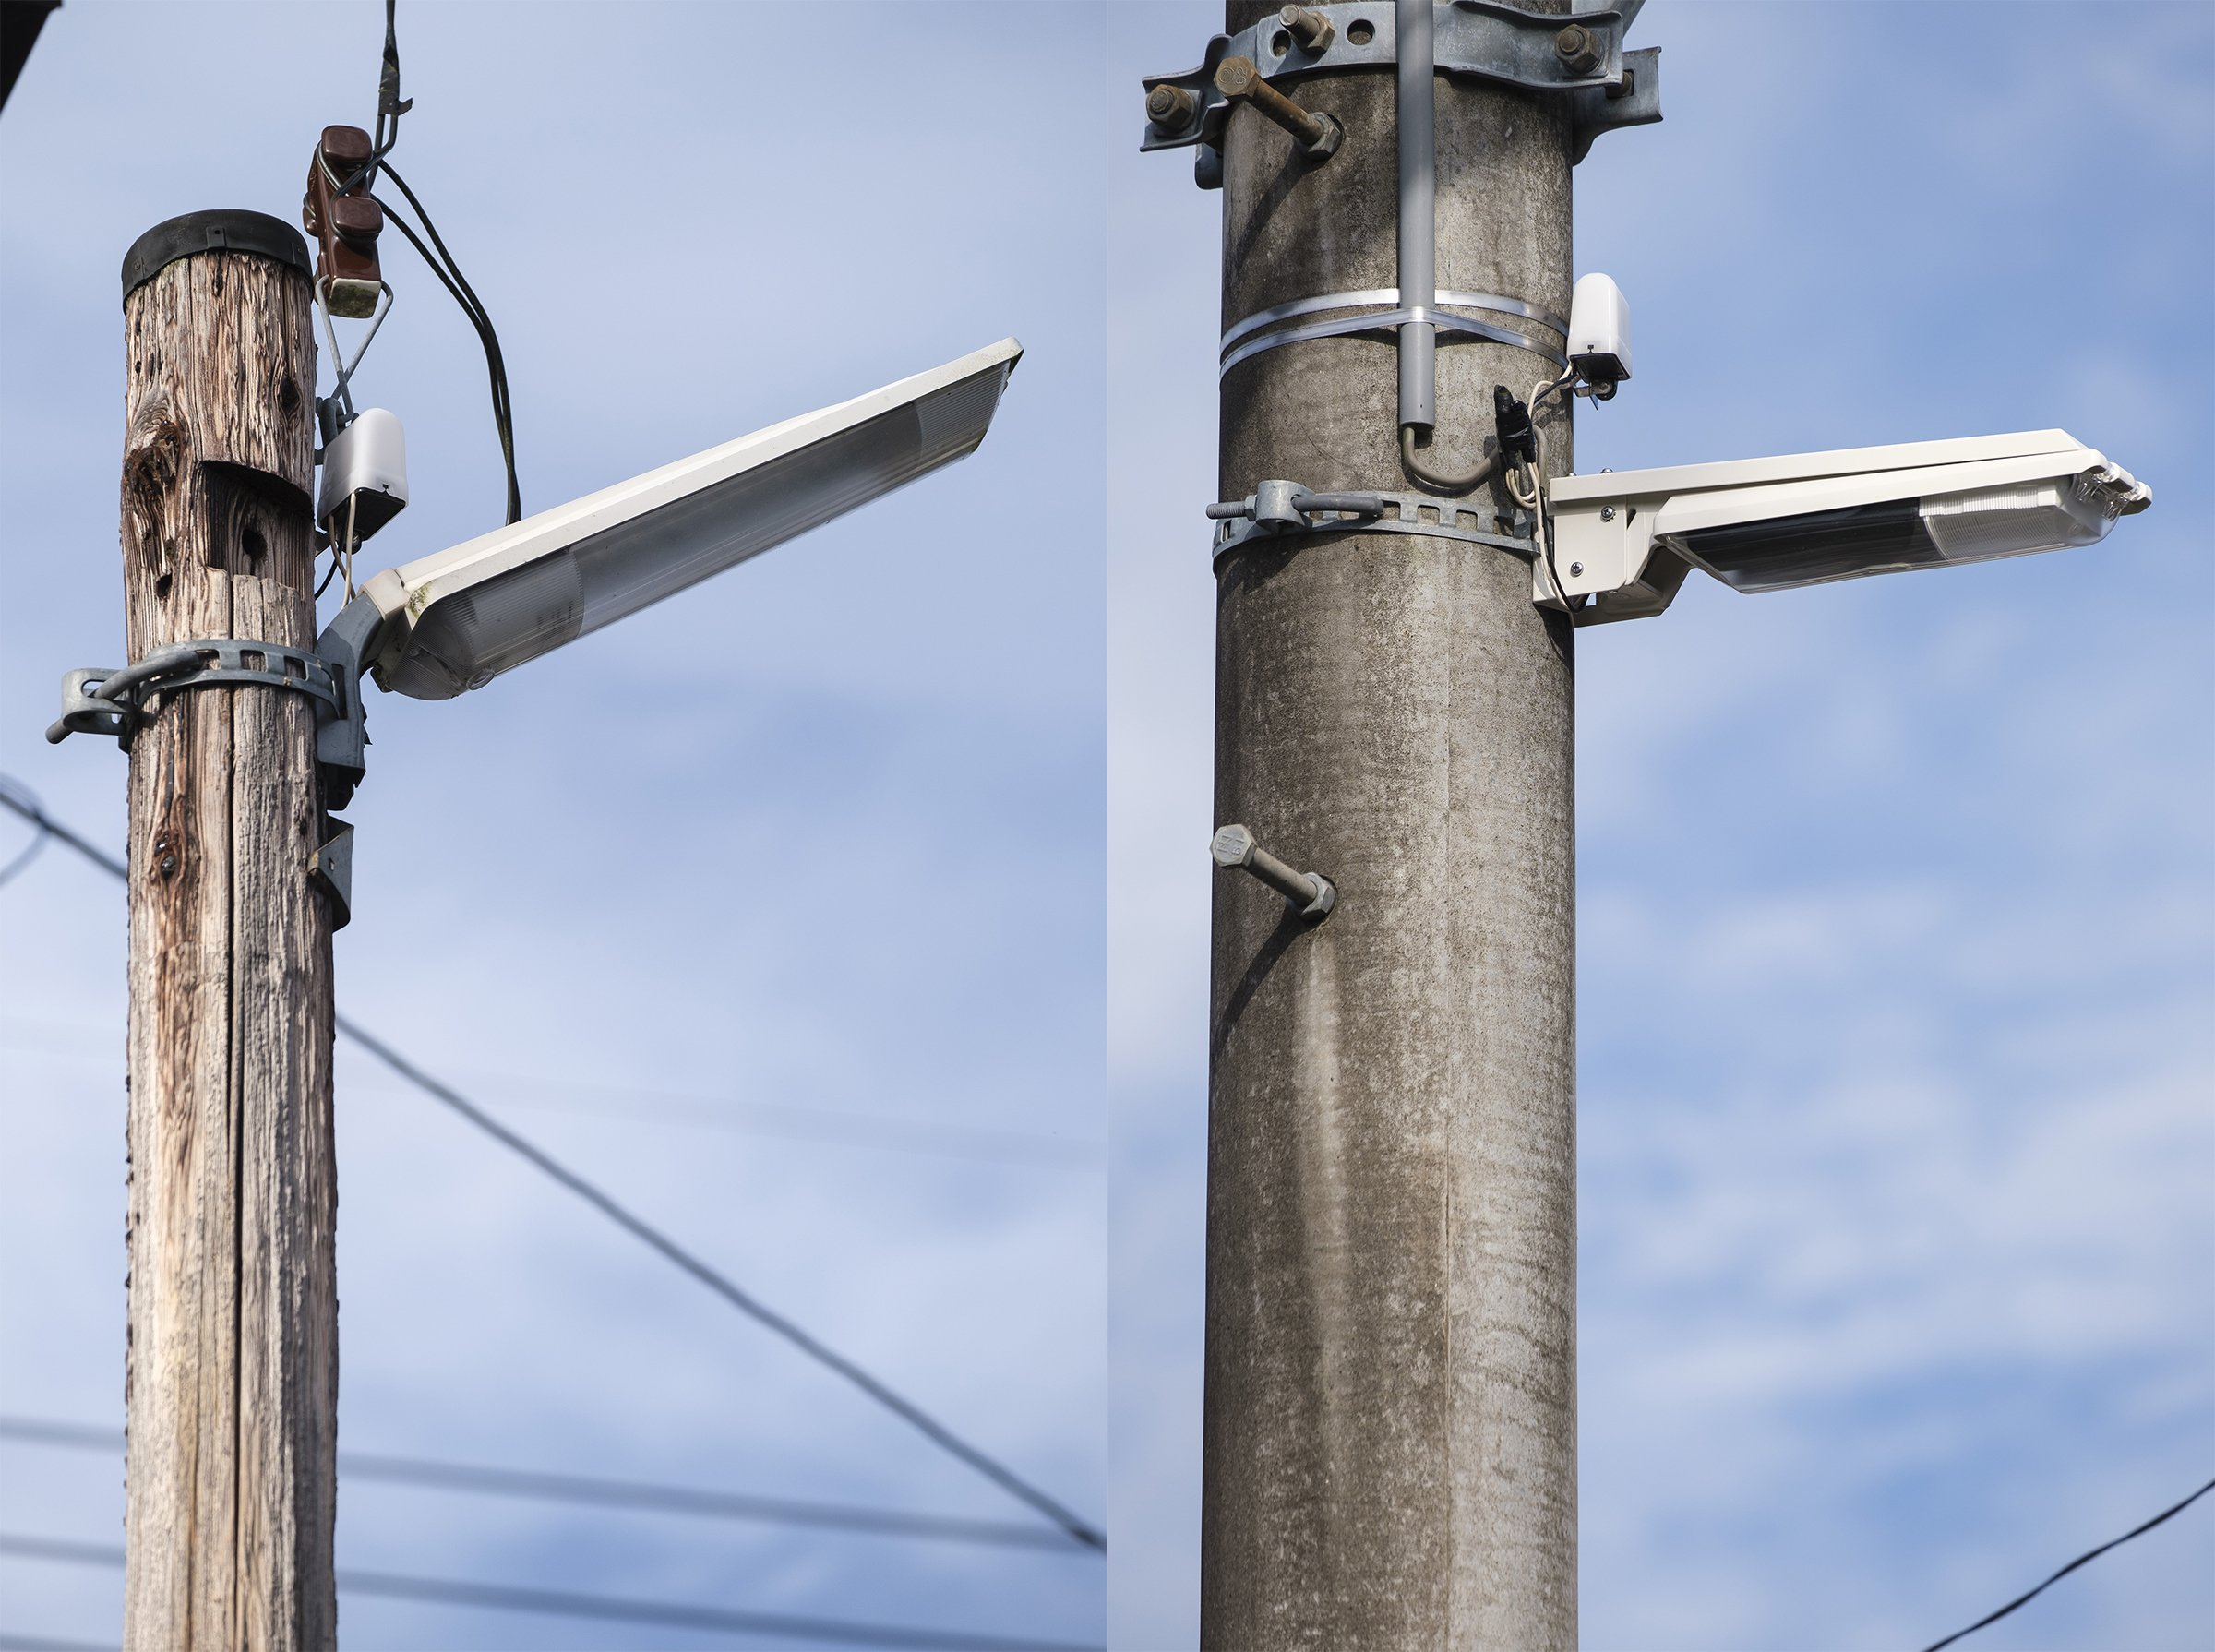 Photo: Conventional lighting which caused upward light leakage (left) and specially developed security lighting installed horizontally to protect the starlit sky (right).